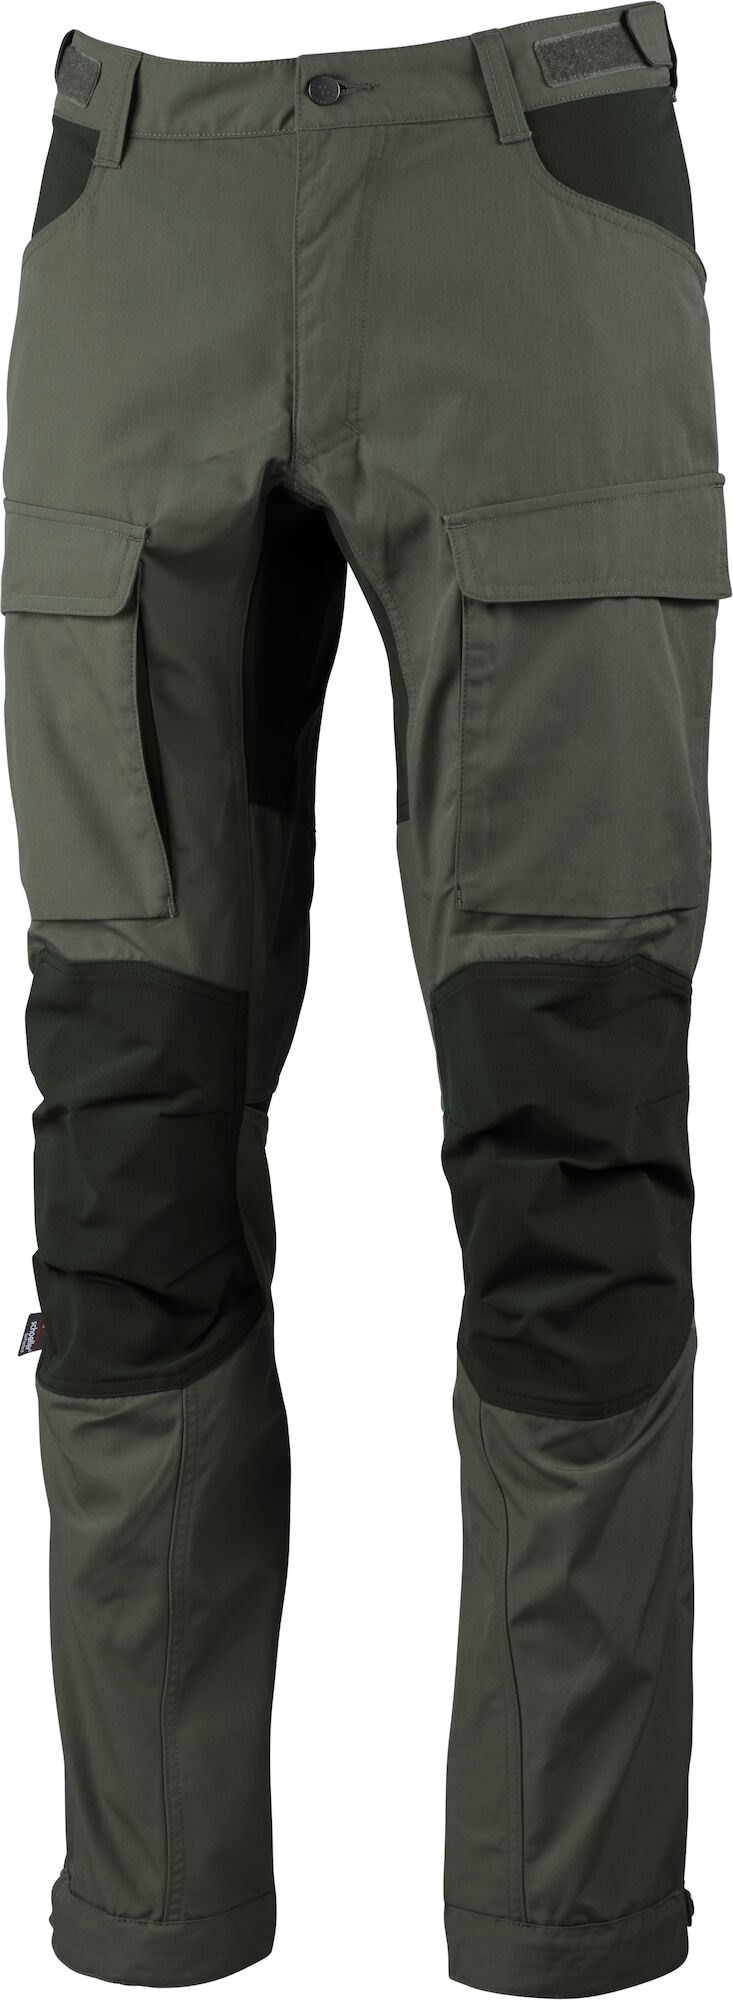 Lundhags Authentic II Pants M's